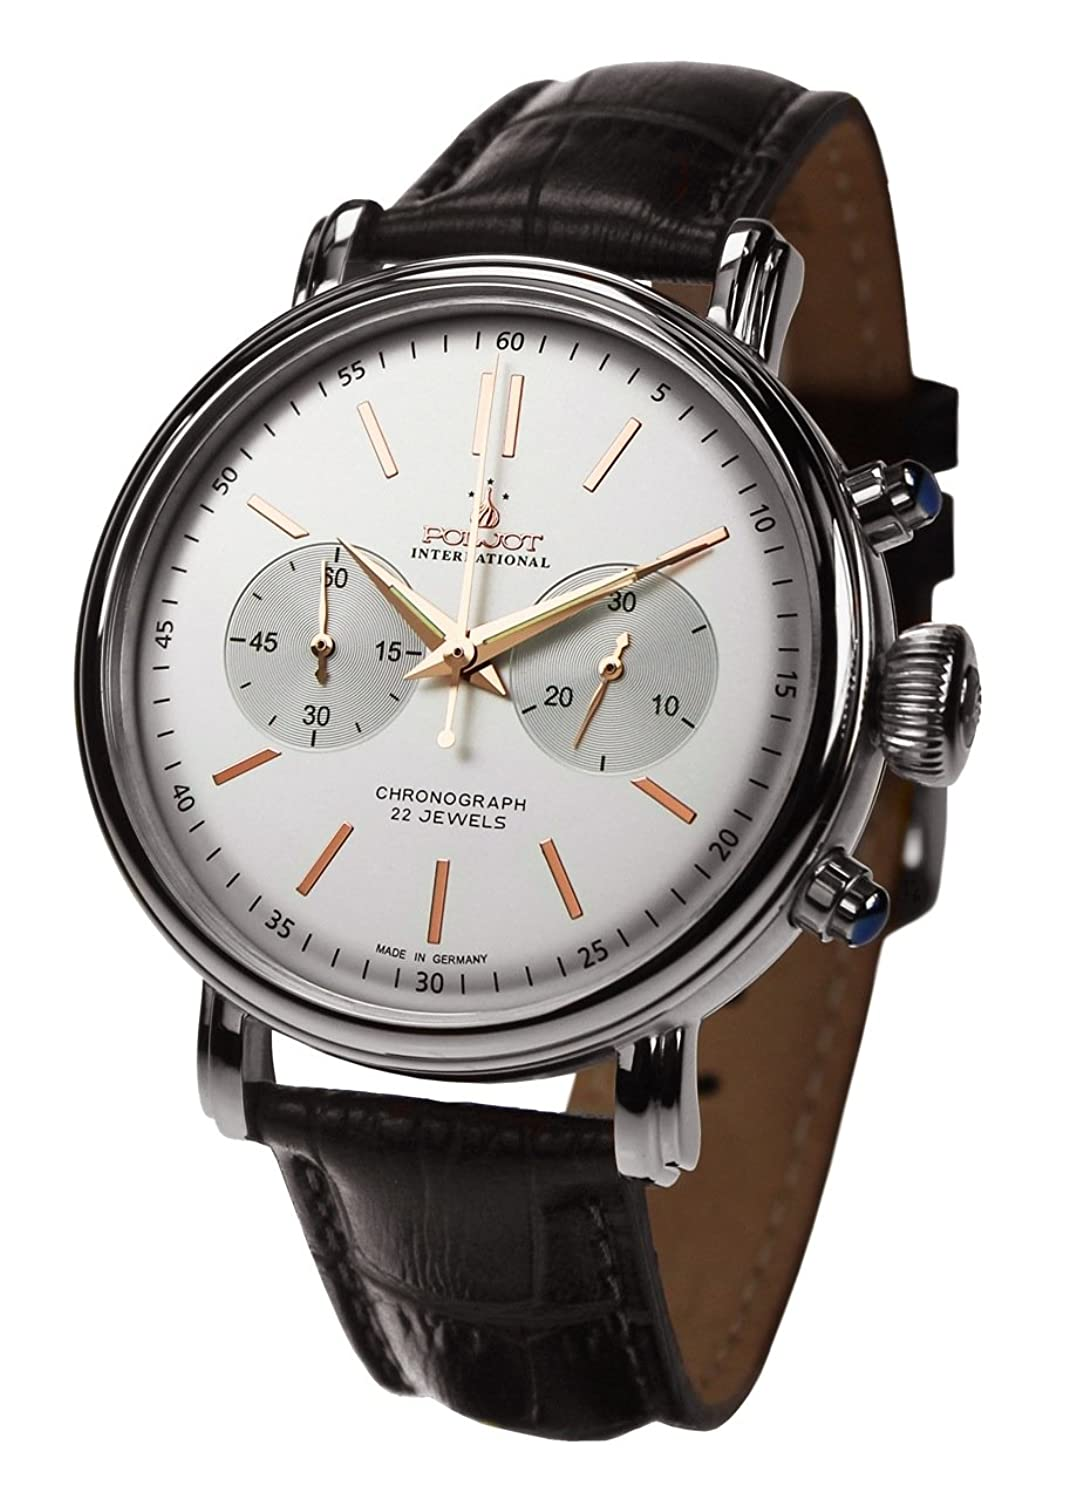 POLJOT Int. Chronograph Herrenuhr Classic Handaufzug Mechanisch Lederband Russian Watch